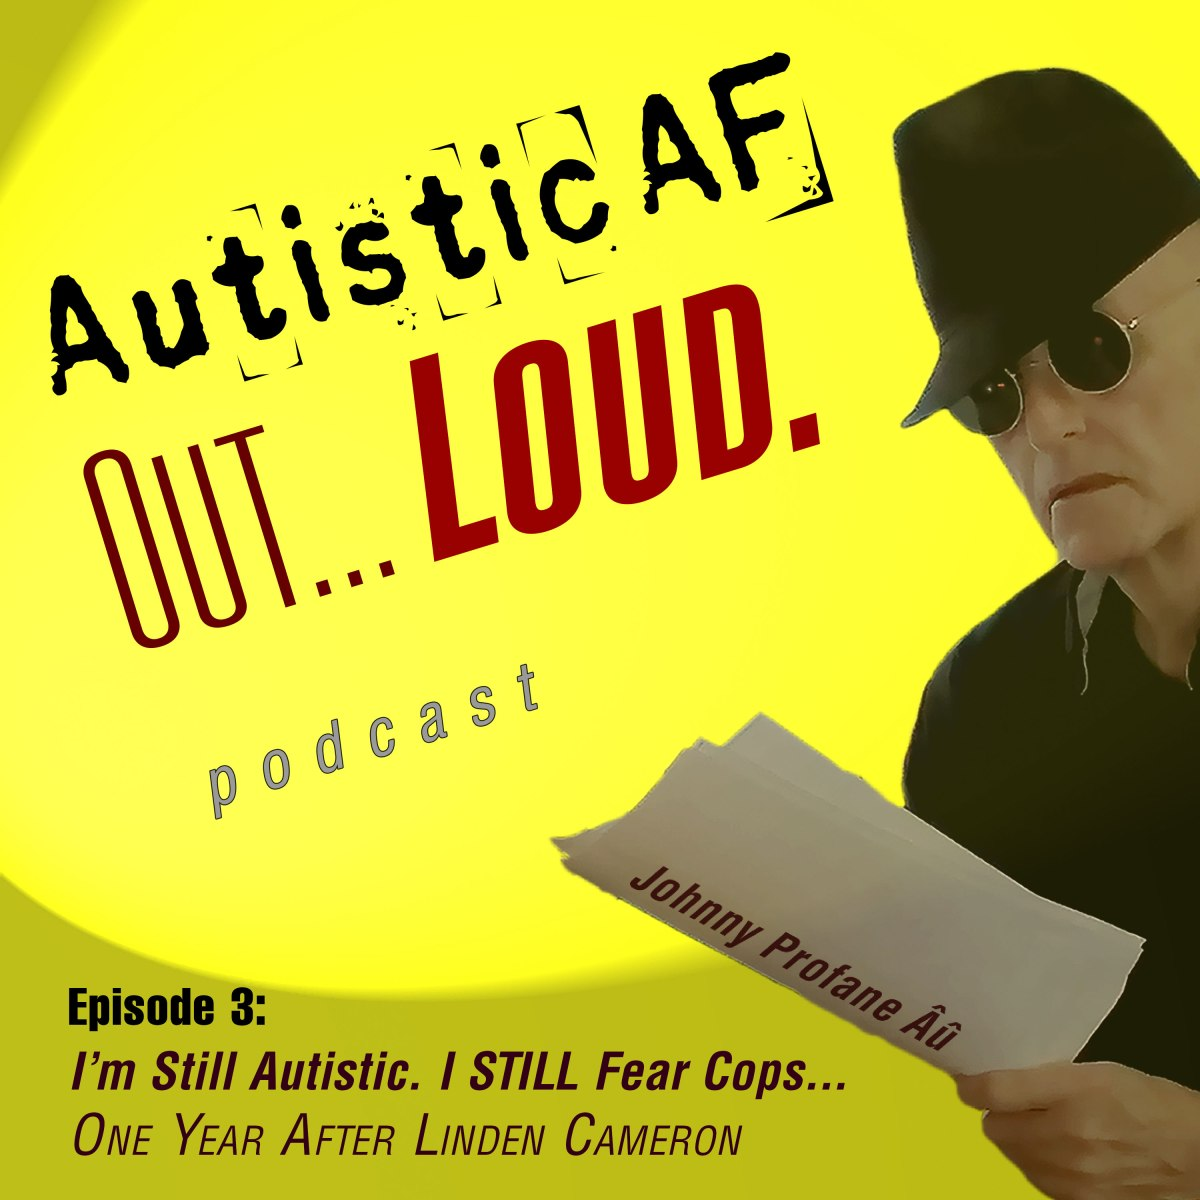 AutisticAF Out Loud Podcast, Episode 3 artwork: I'm Still Autistic. I STILL Fear Cops... One Year after Linden Cameron.